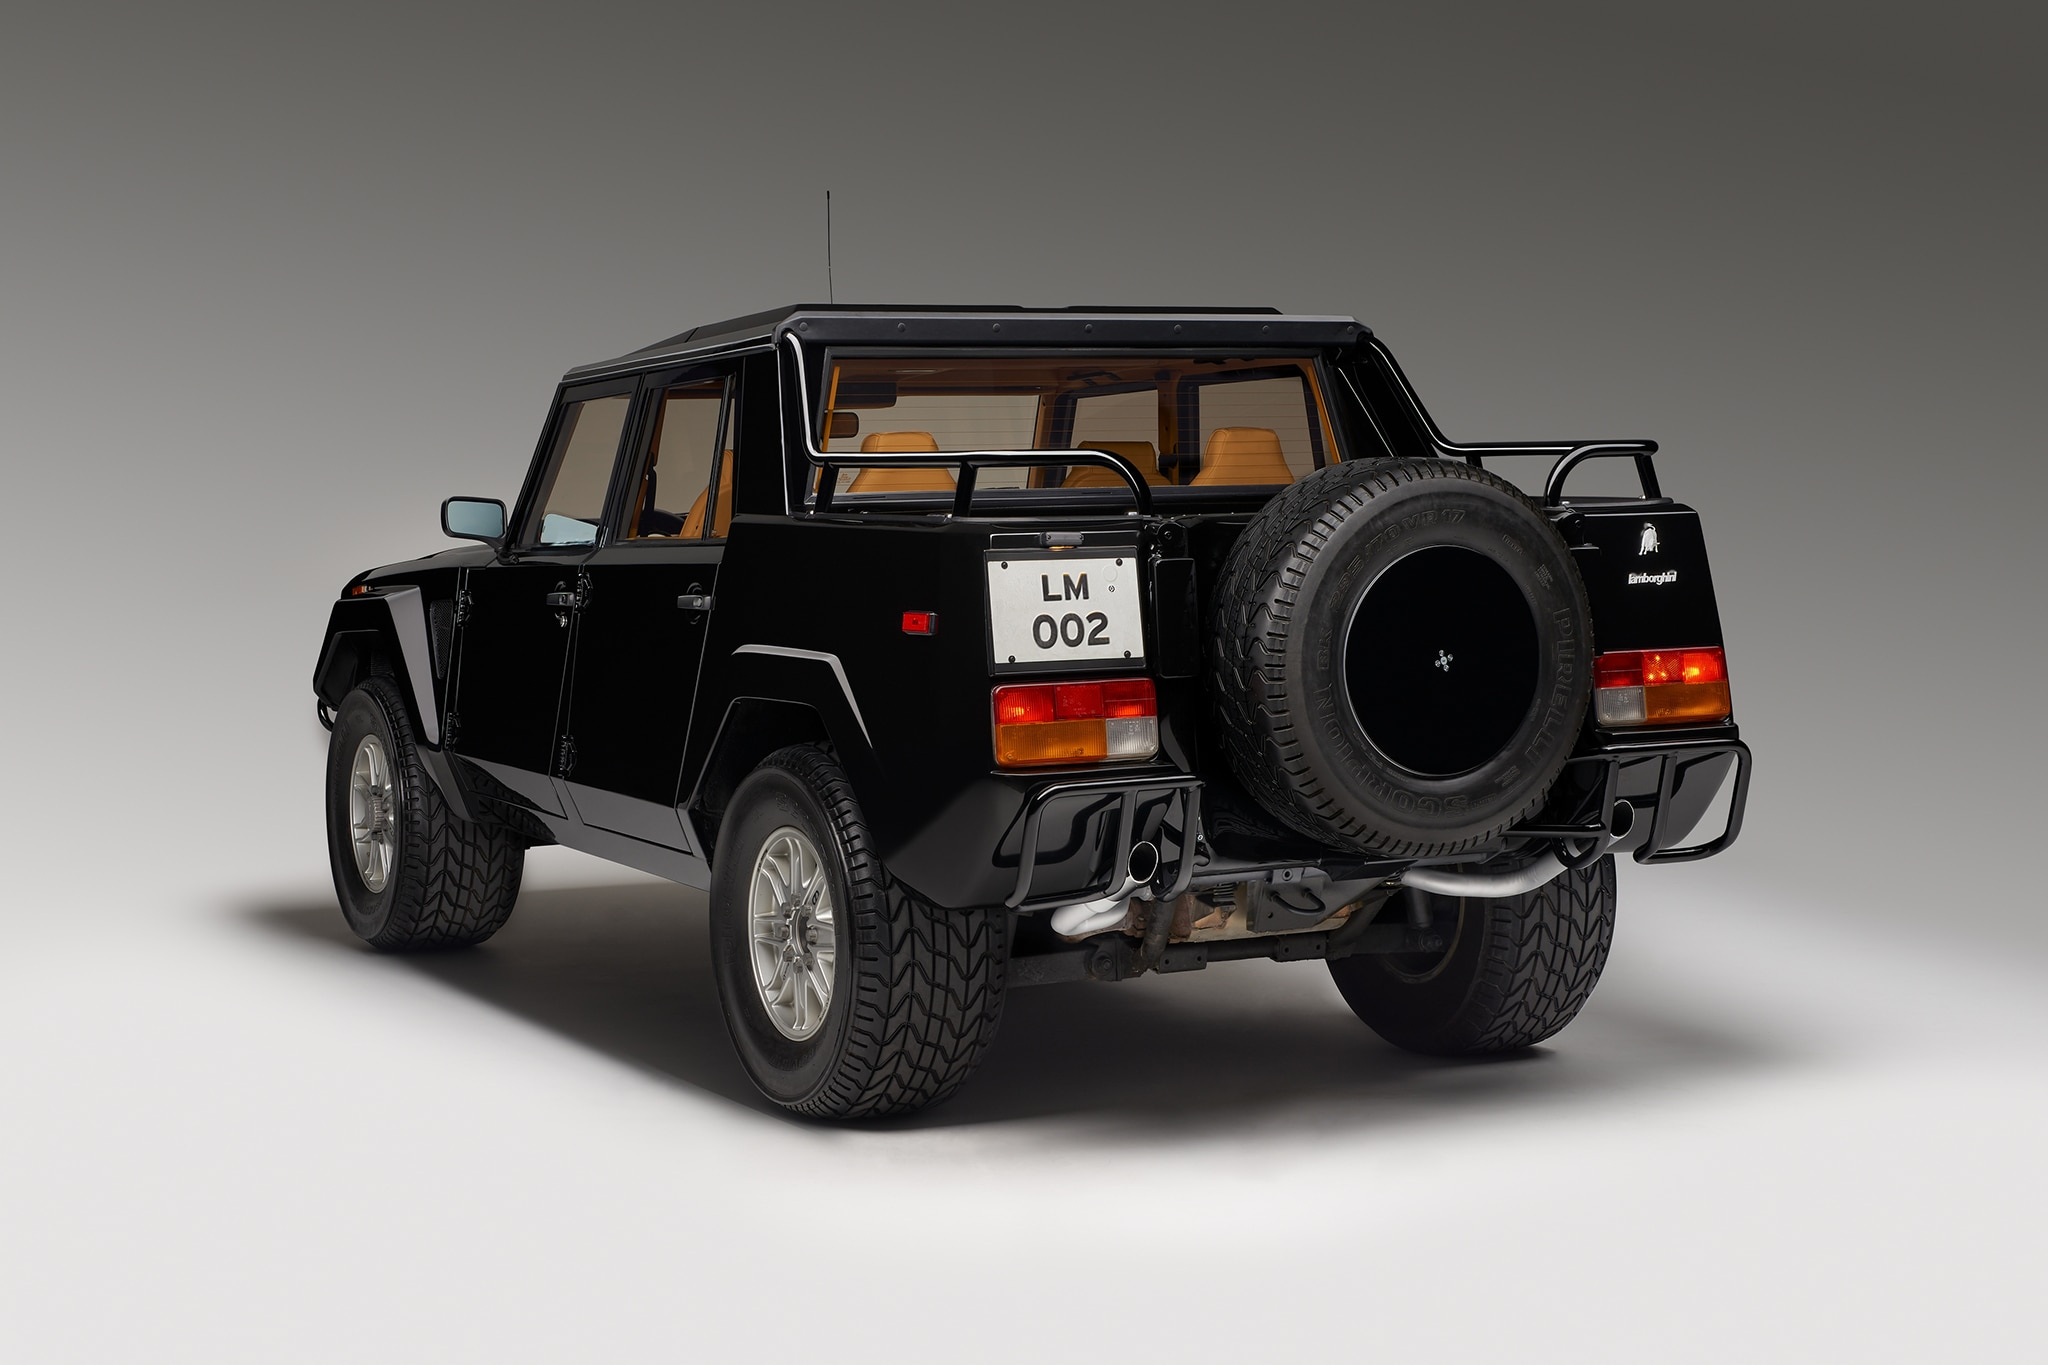 http://st.automobilemag.com/uploads/sites/5/2017/10/Lamborghini-LM002-rear-three-quarter.jpg